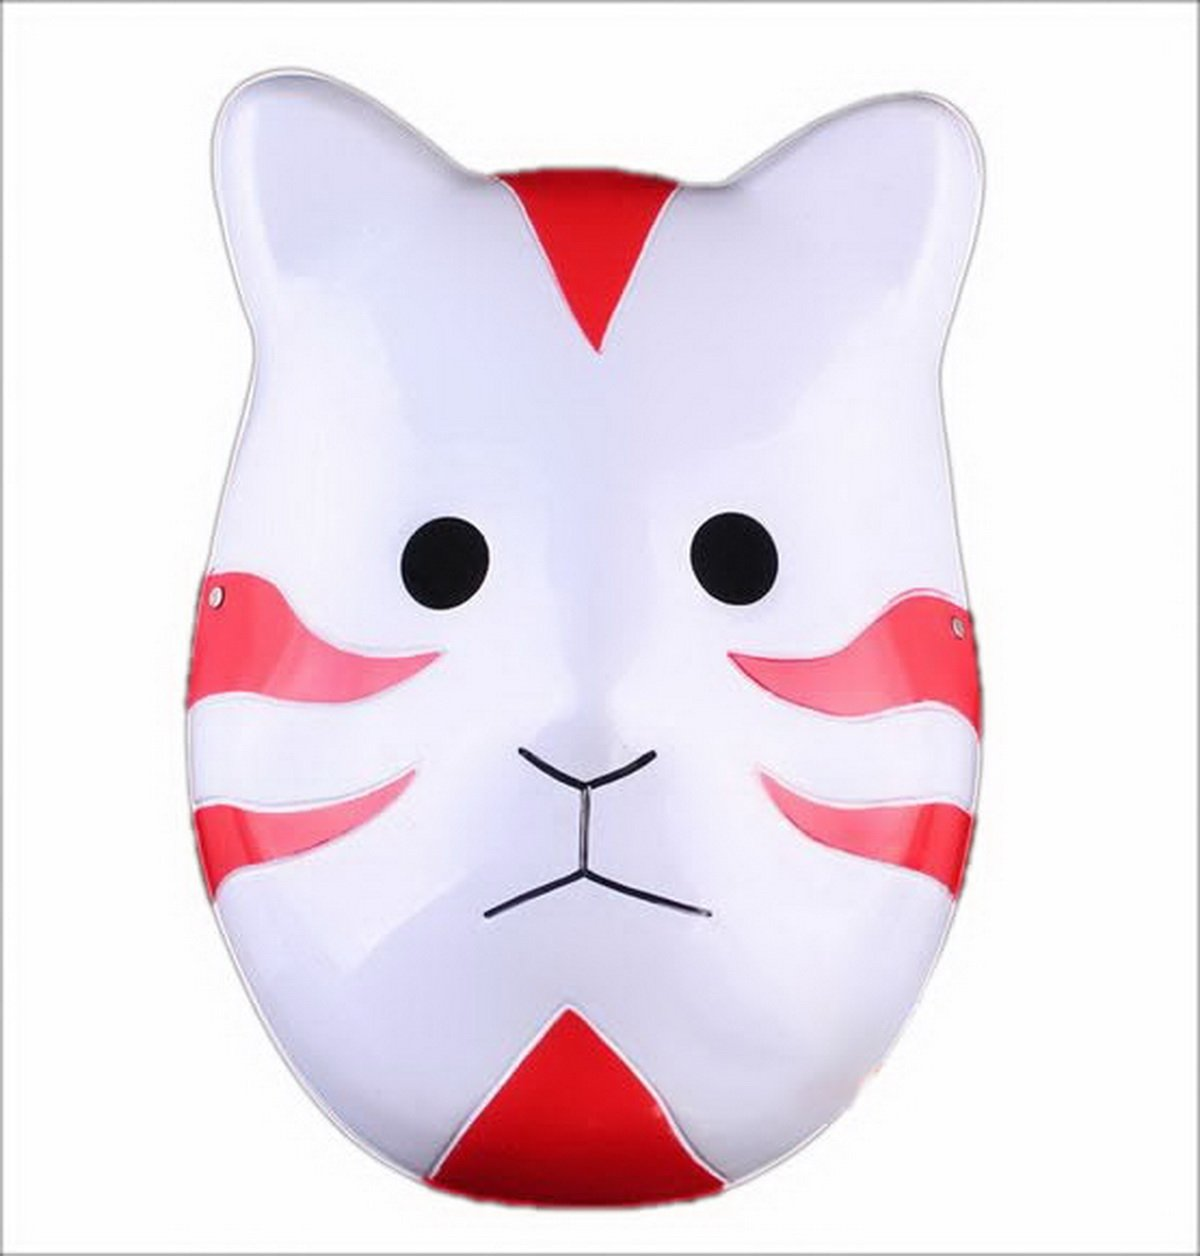 Naruto Shippuuden ANBU Cosplay Mask Itachi Cat Style Red by Renineic: Amazon.es: Juguetes y juegos